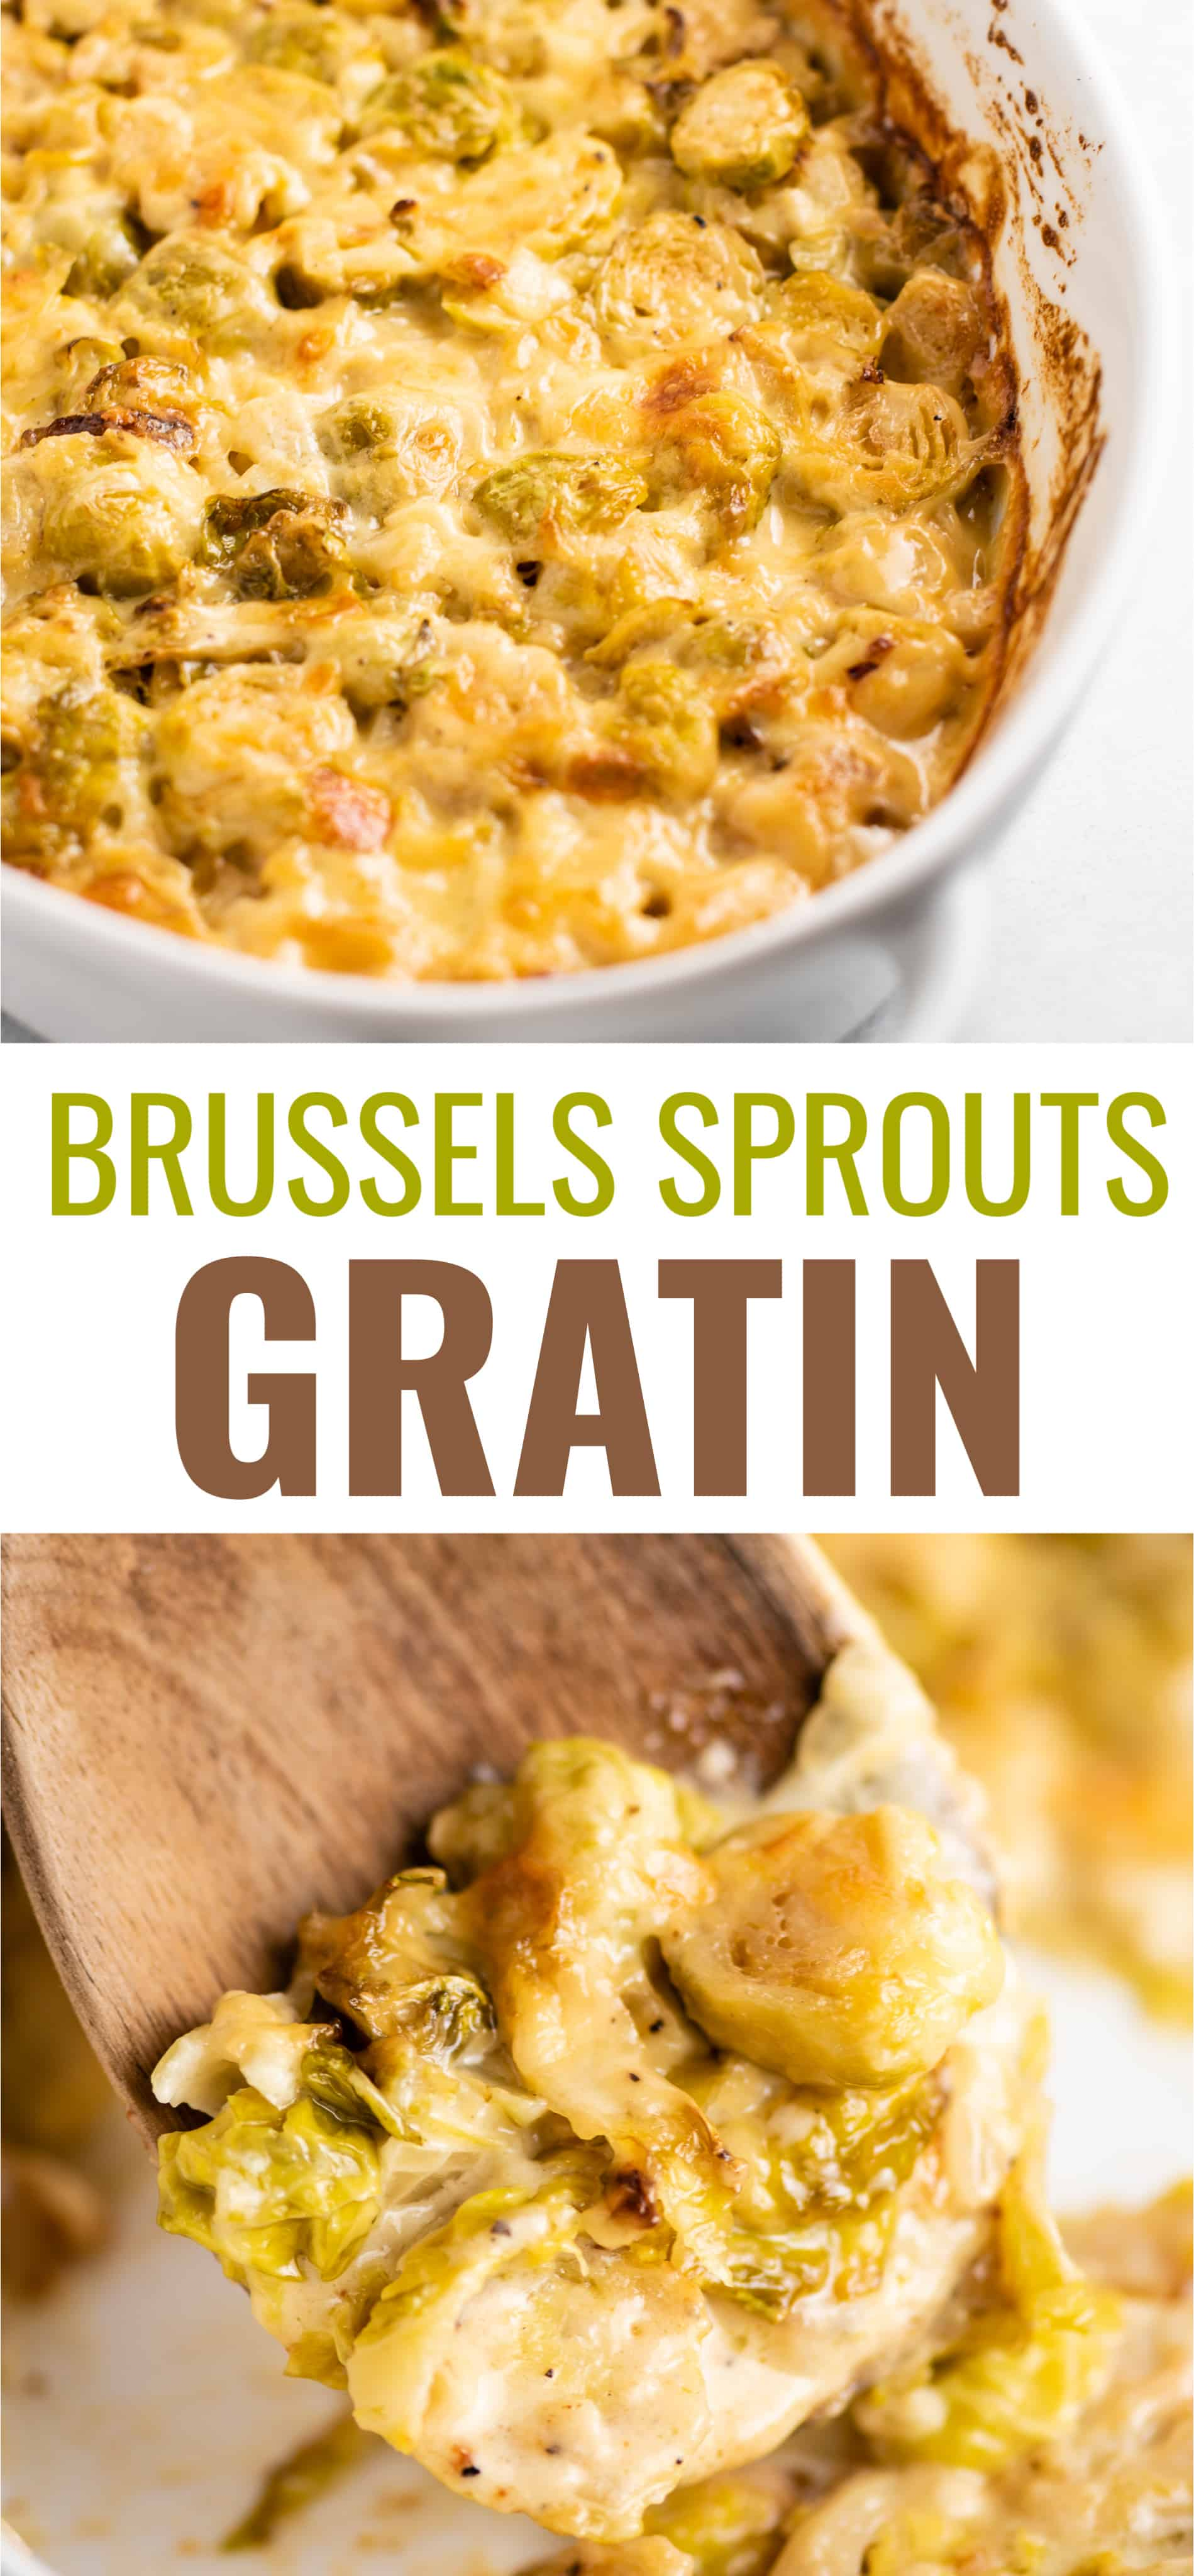 "image with the text ""brussels sprouts gratin"" and two photos of the dish"